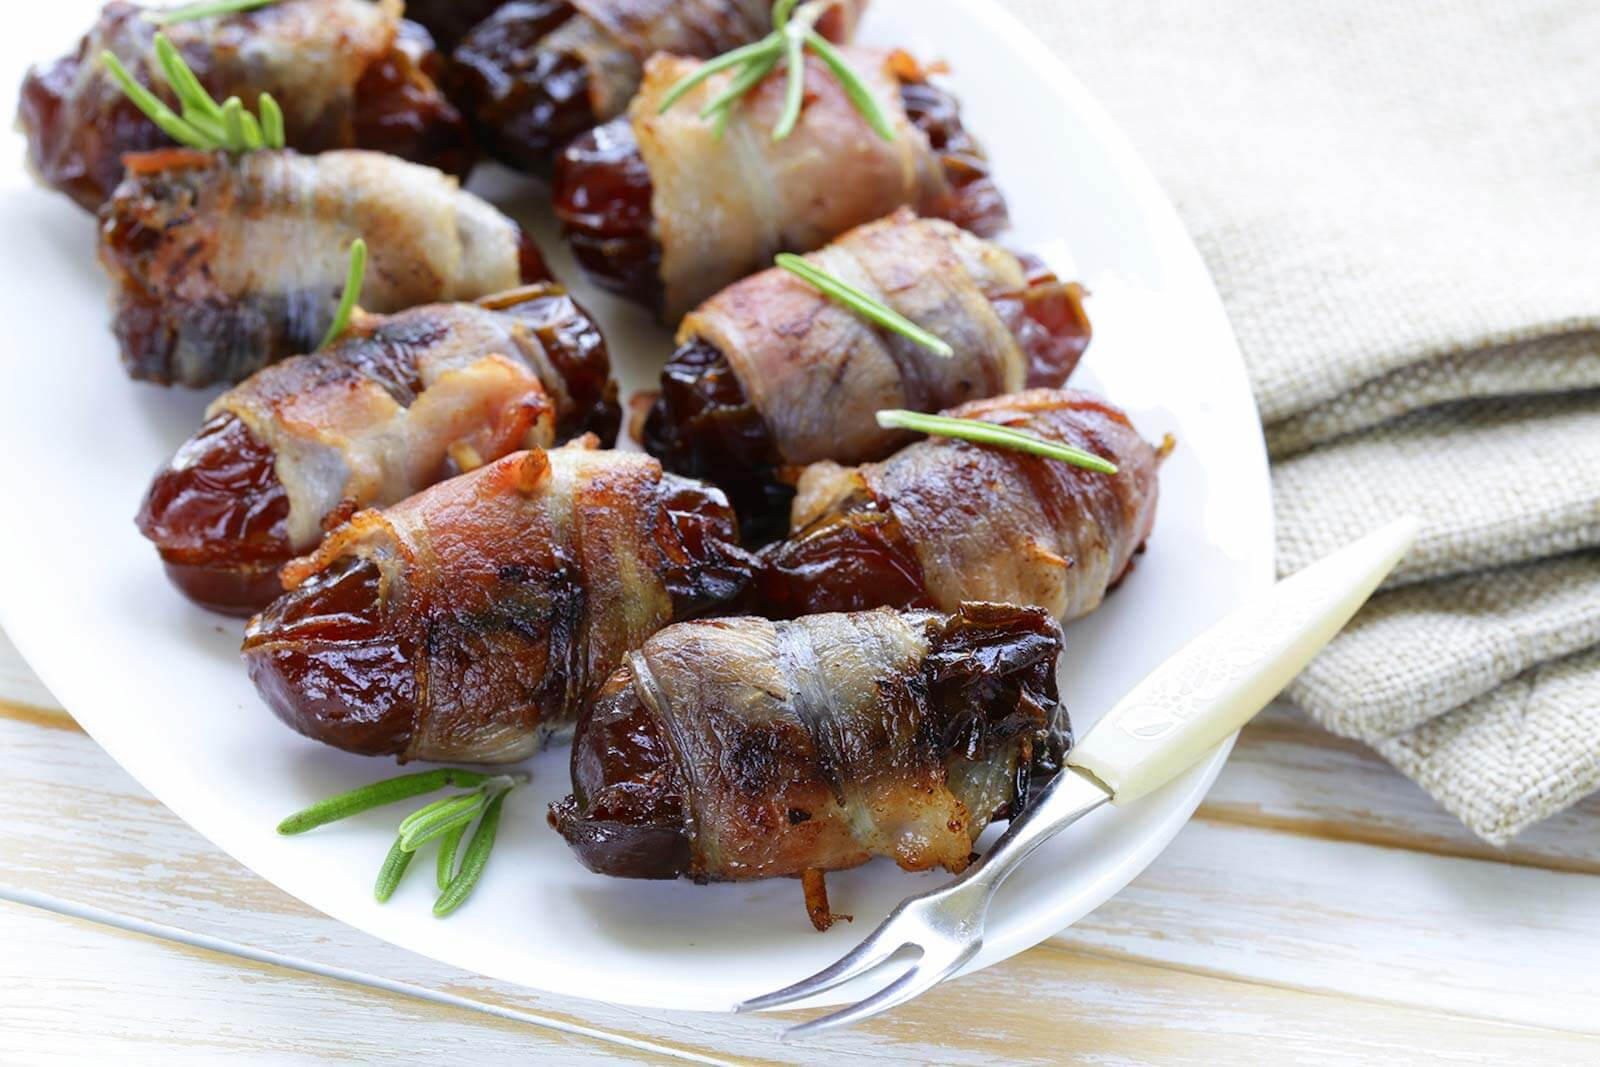 Bacon Wrapped Dates with Marcona Almonds